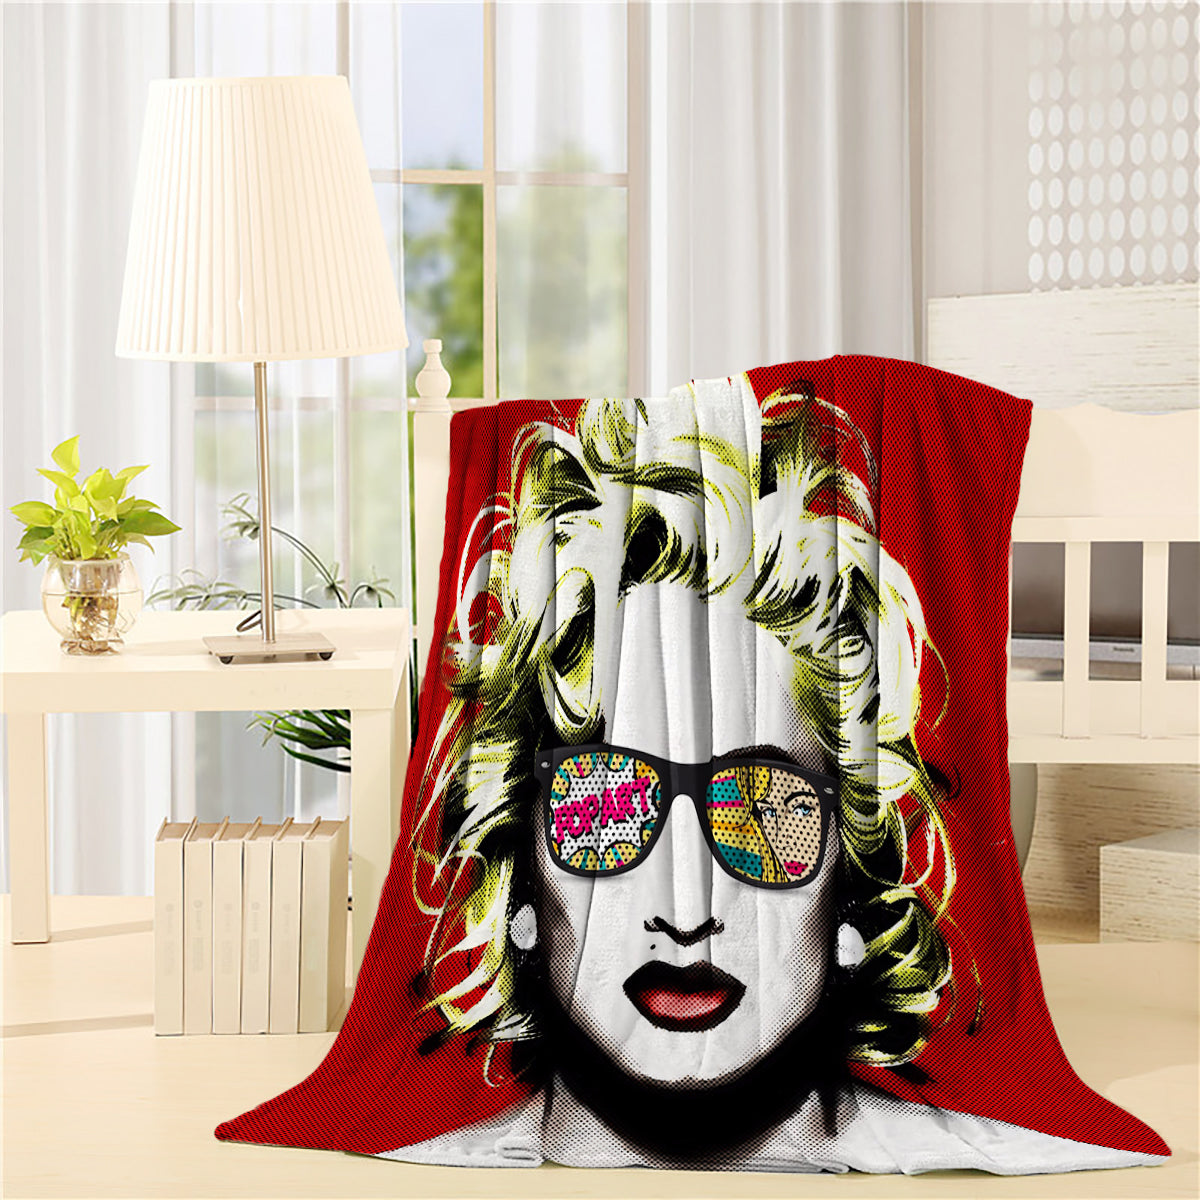 Popart Glass Marilyn Monroe Throw Blankets